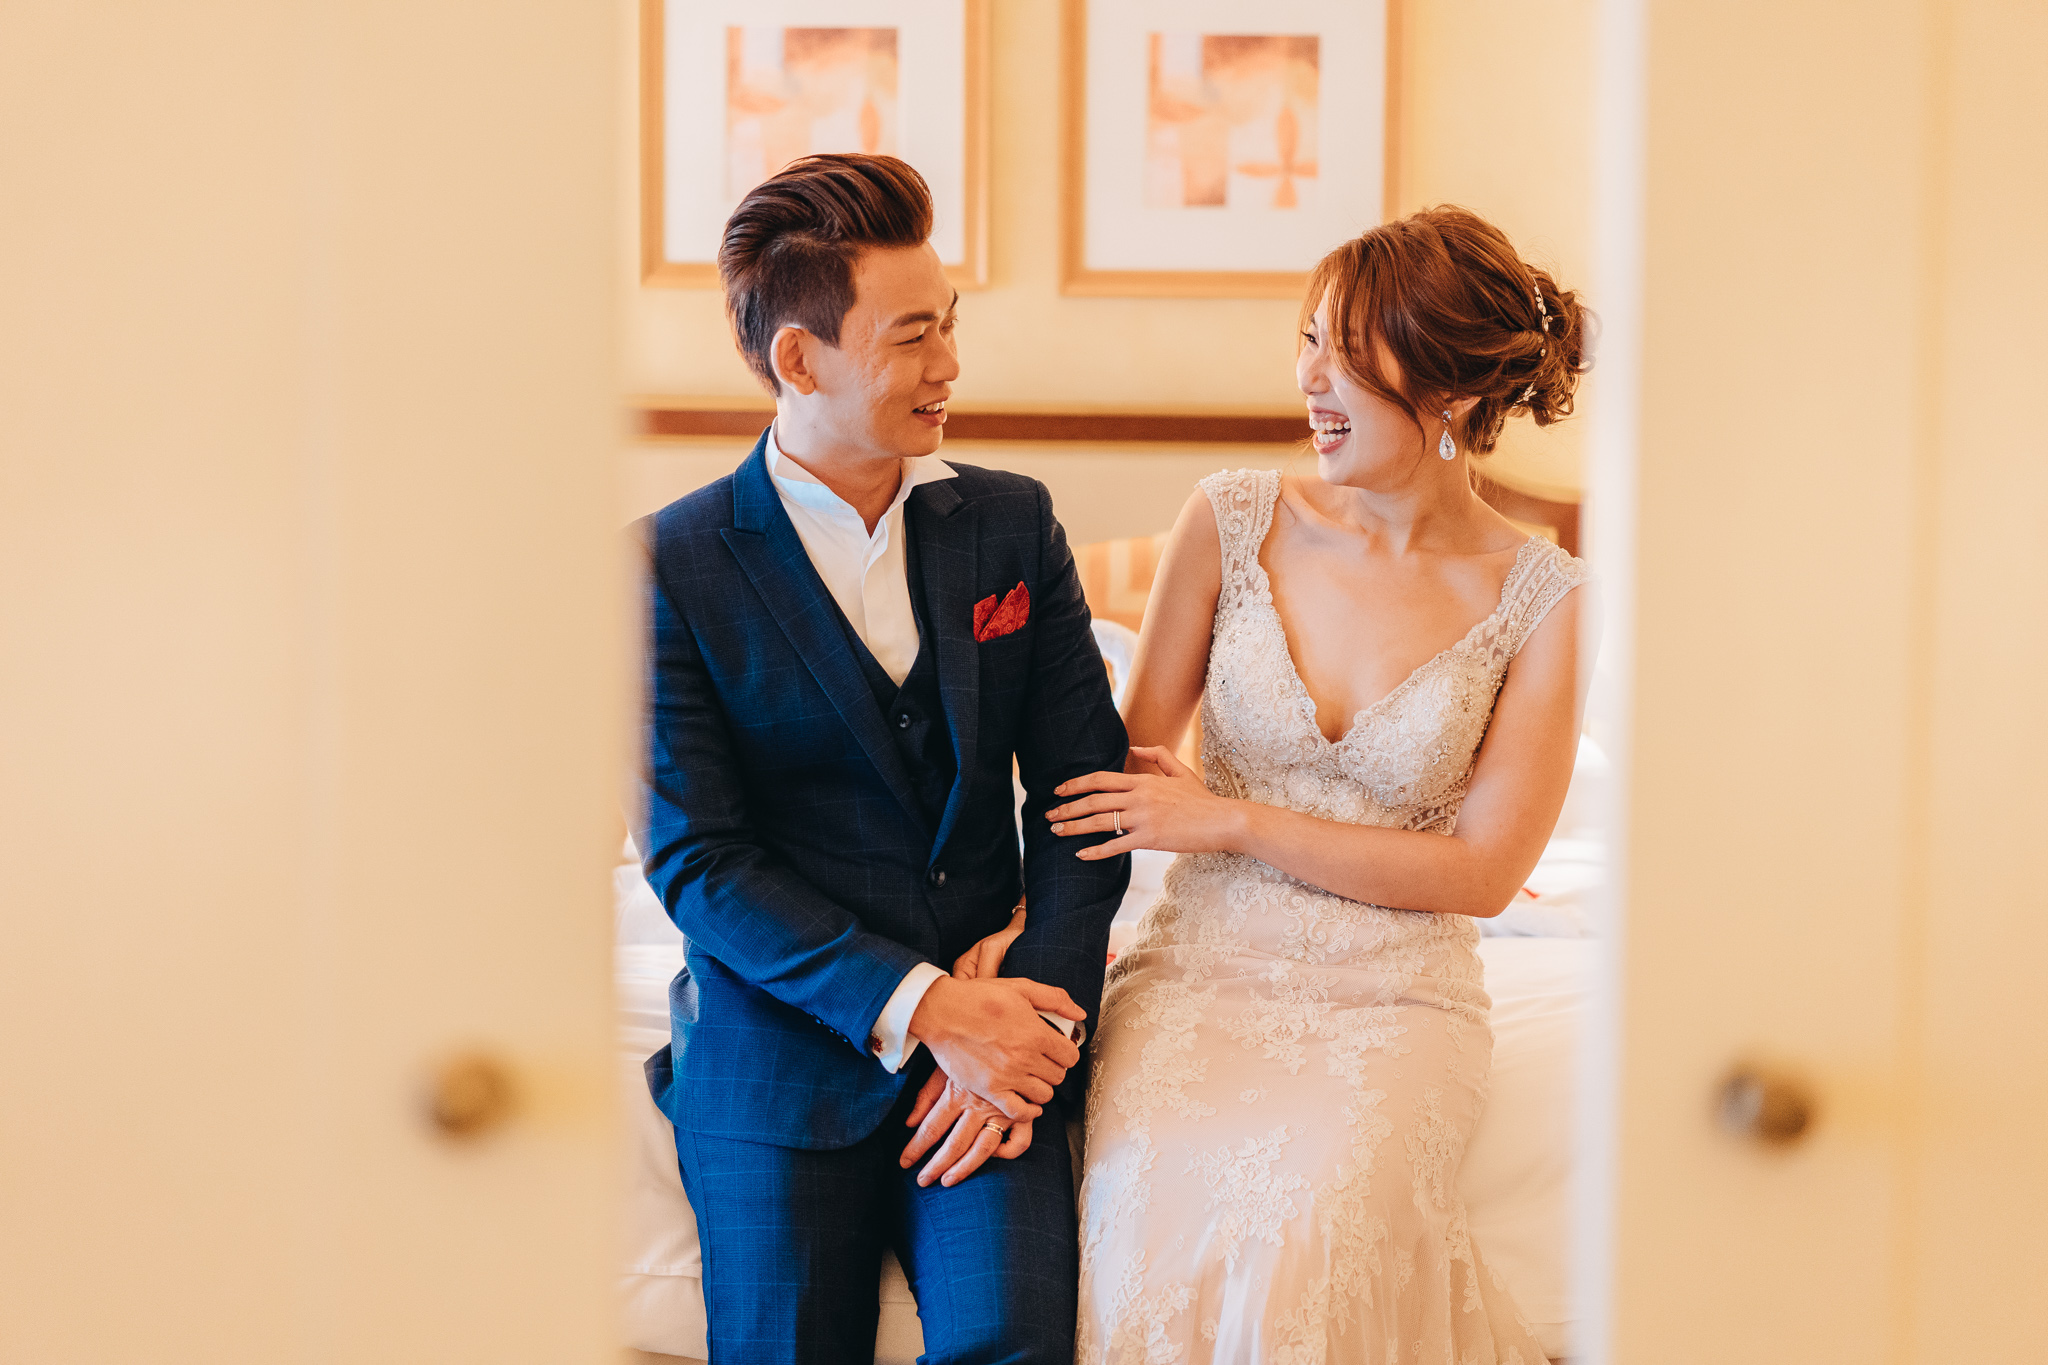 Cindy & Kevin Wedding Day Highlights (resized for sharing) - 167.jpg